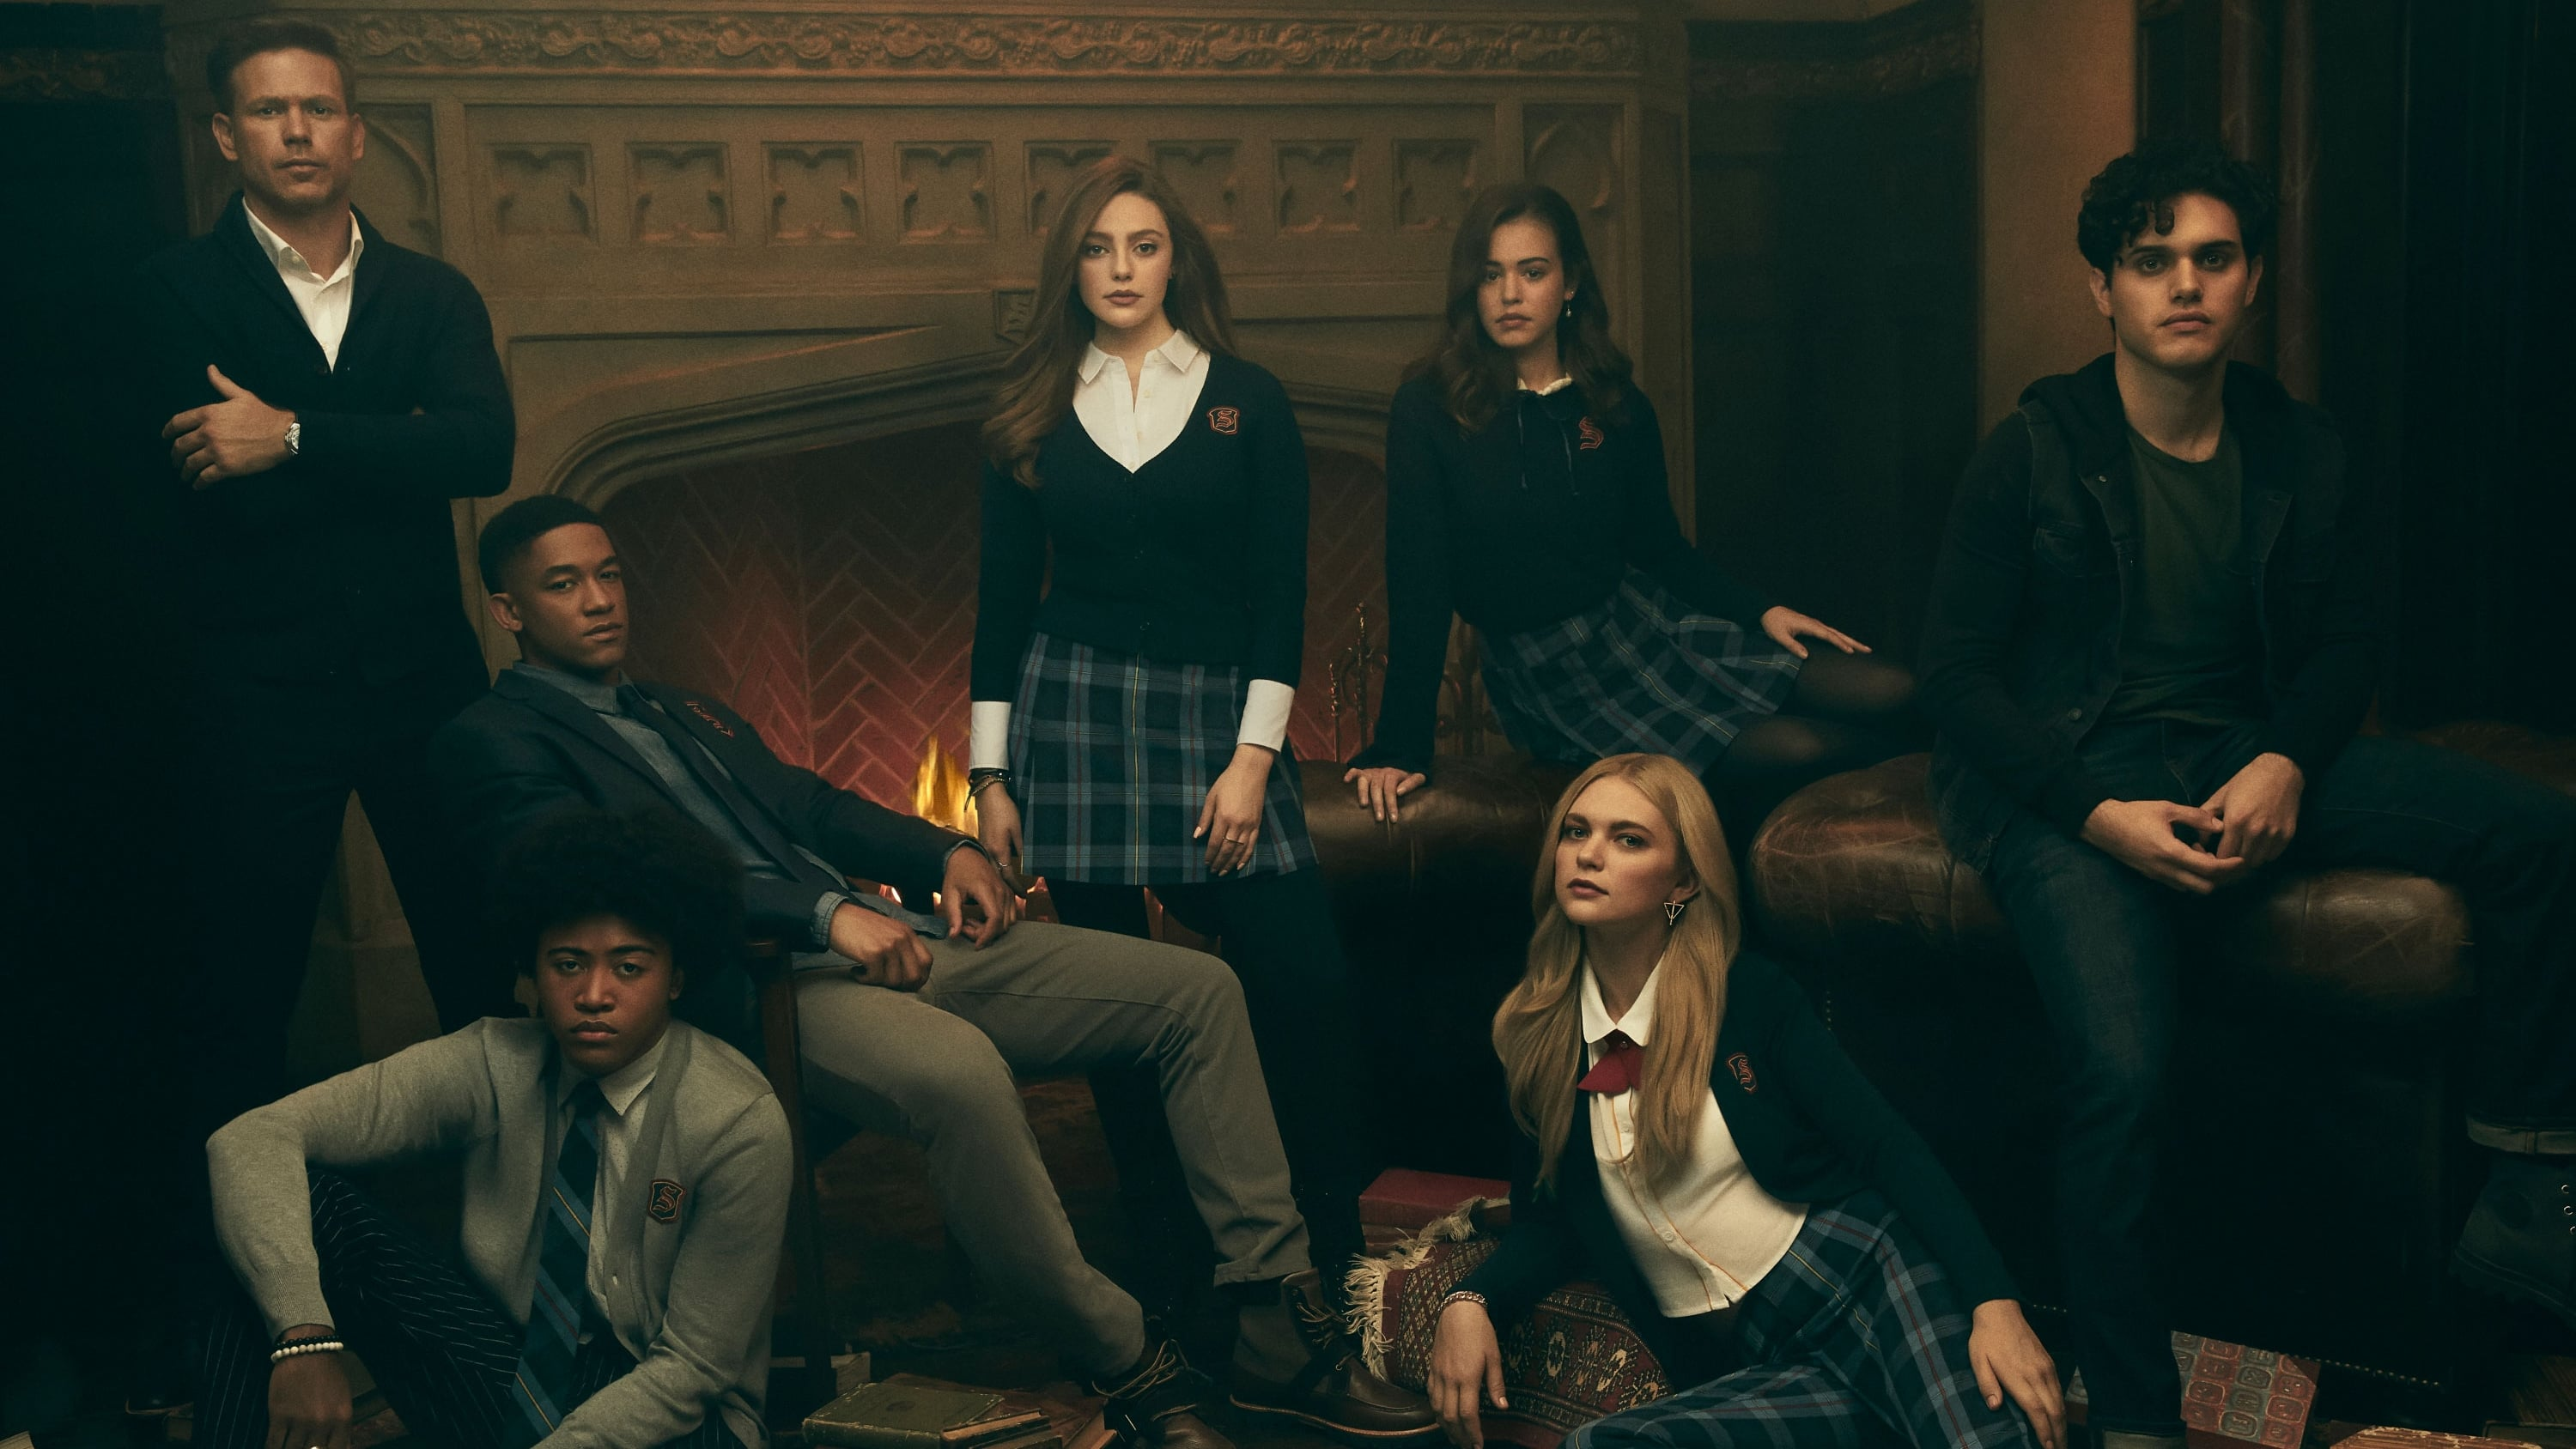 Legacies - Season 3 Episode 9 : Do All Malivore Monsters Provide This Level of Emotional Insight?